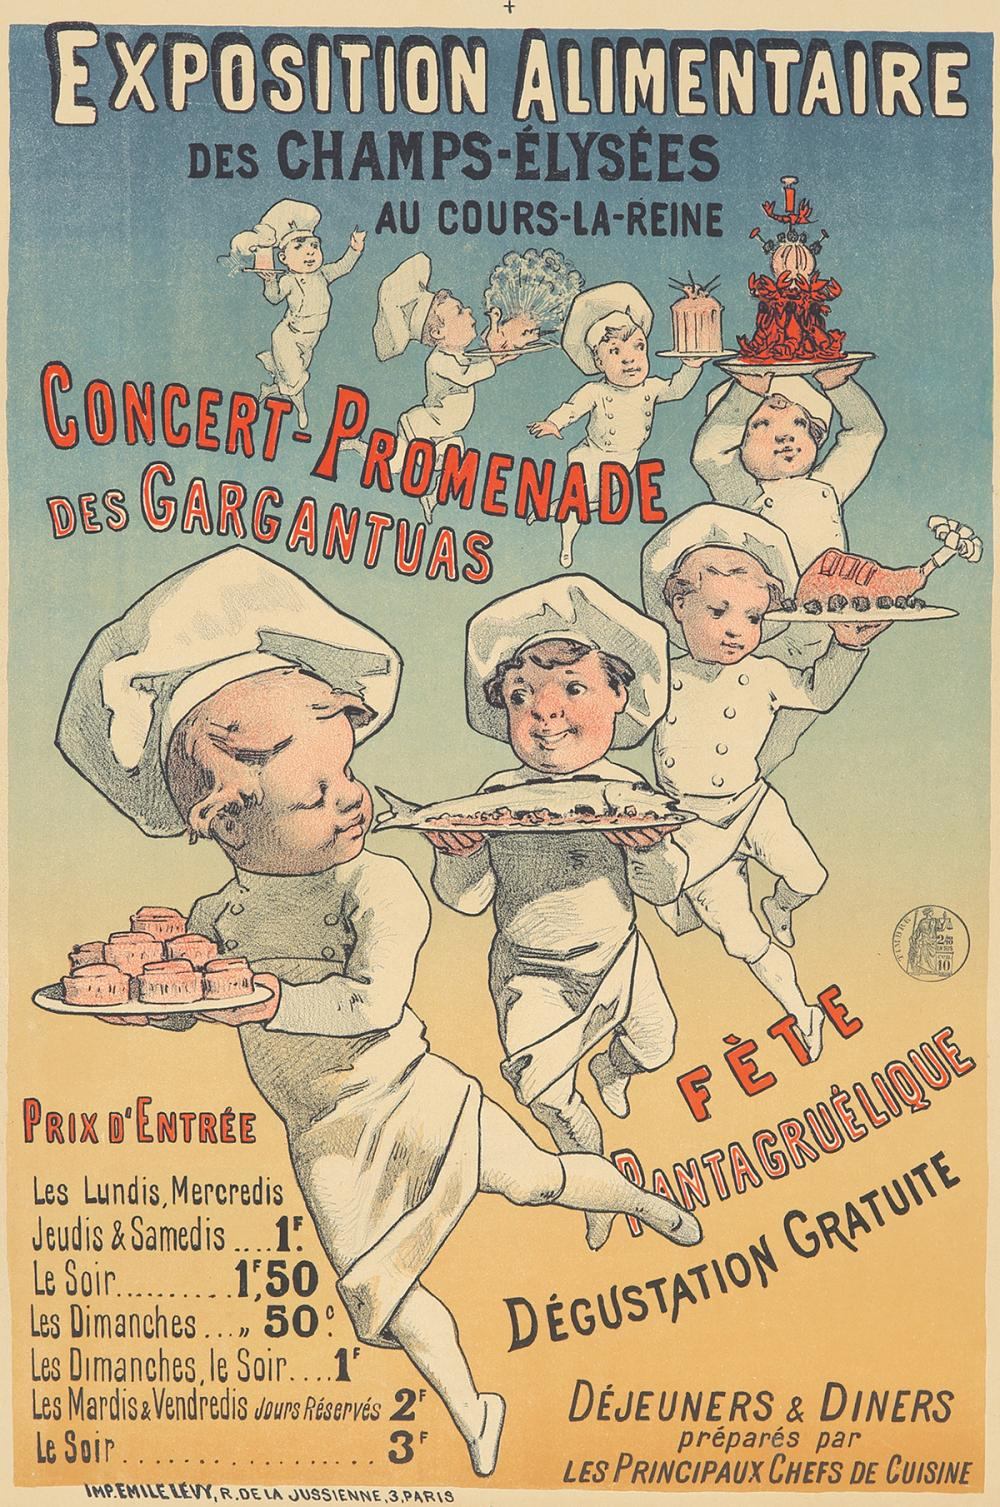 Exposition Alimentaire. ca. 1883.